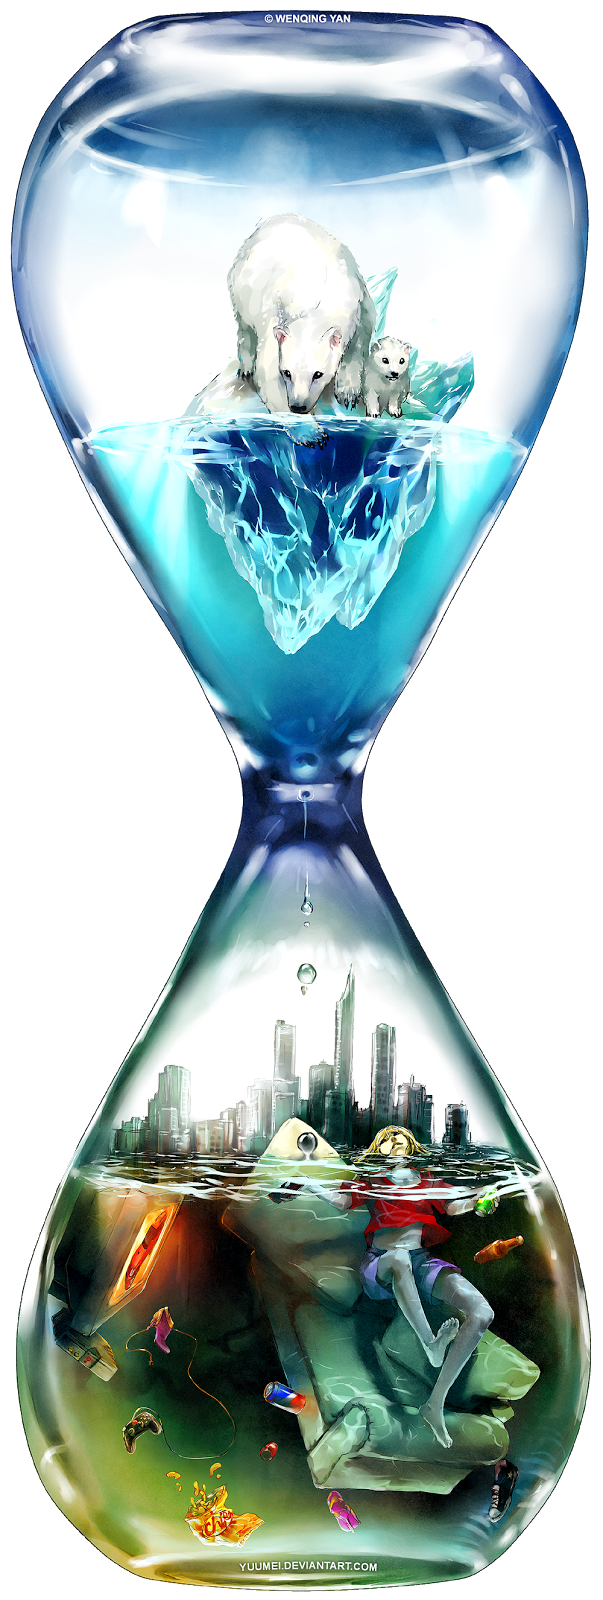 Hourglass clipart inevitable. Wenqing yan yuumei illustrations